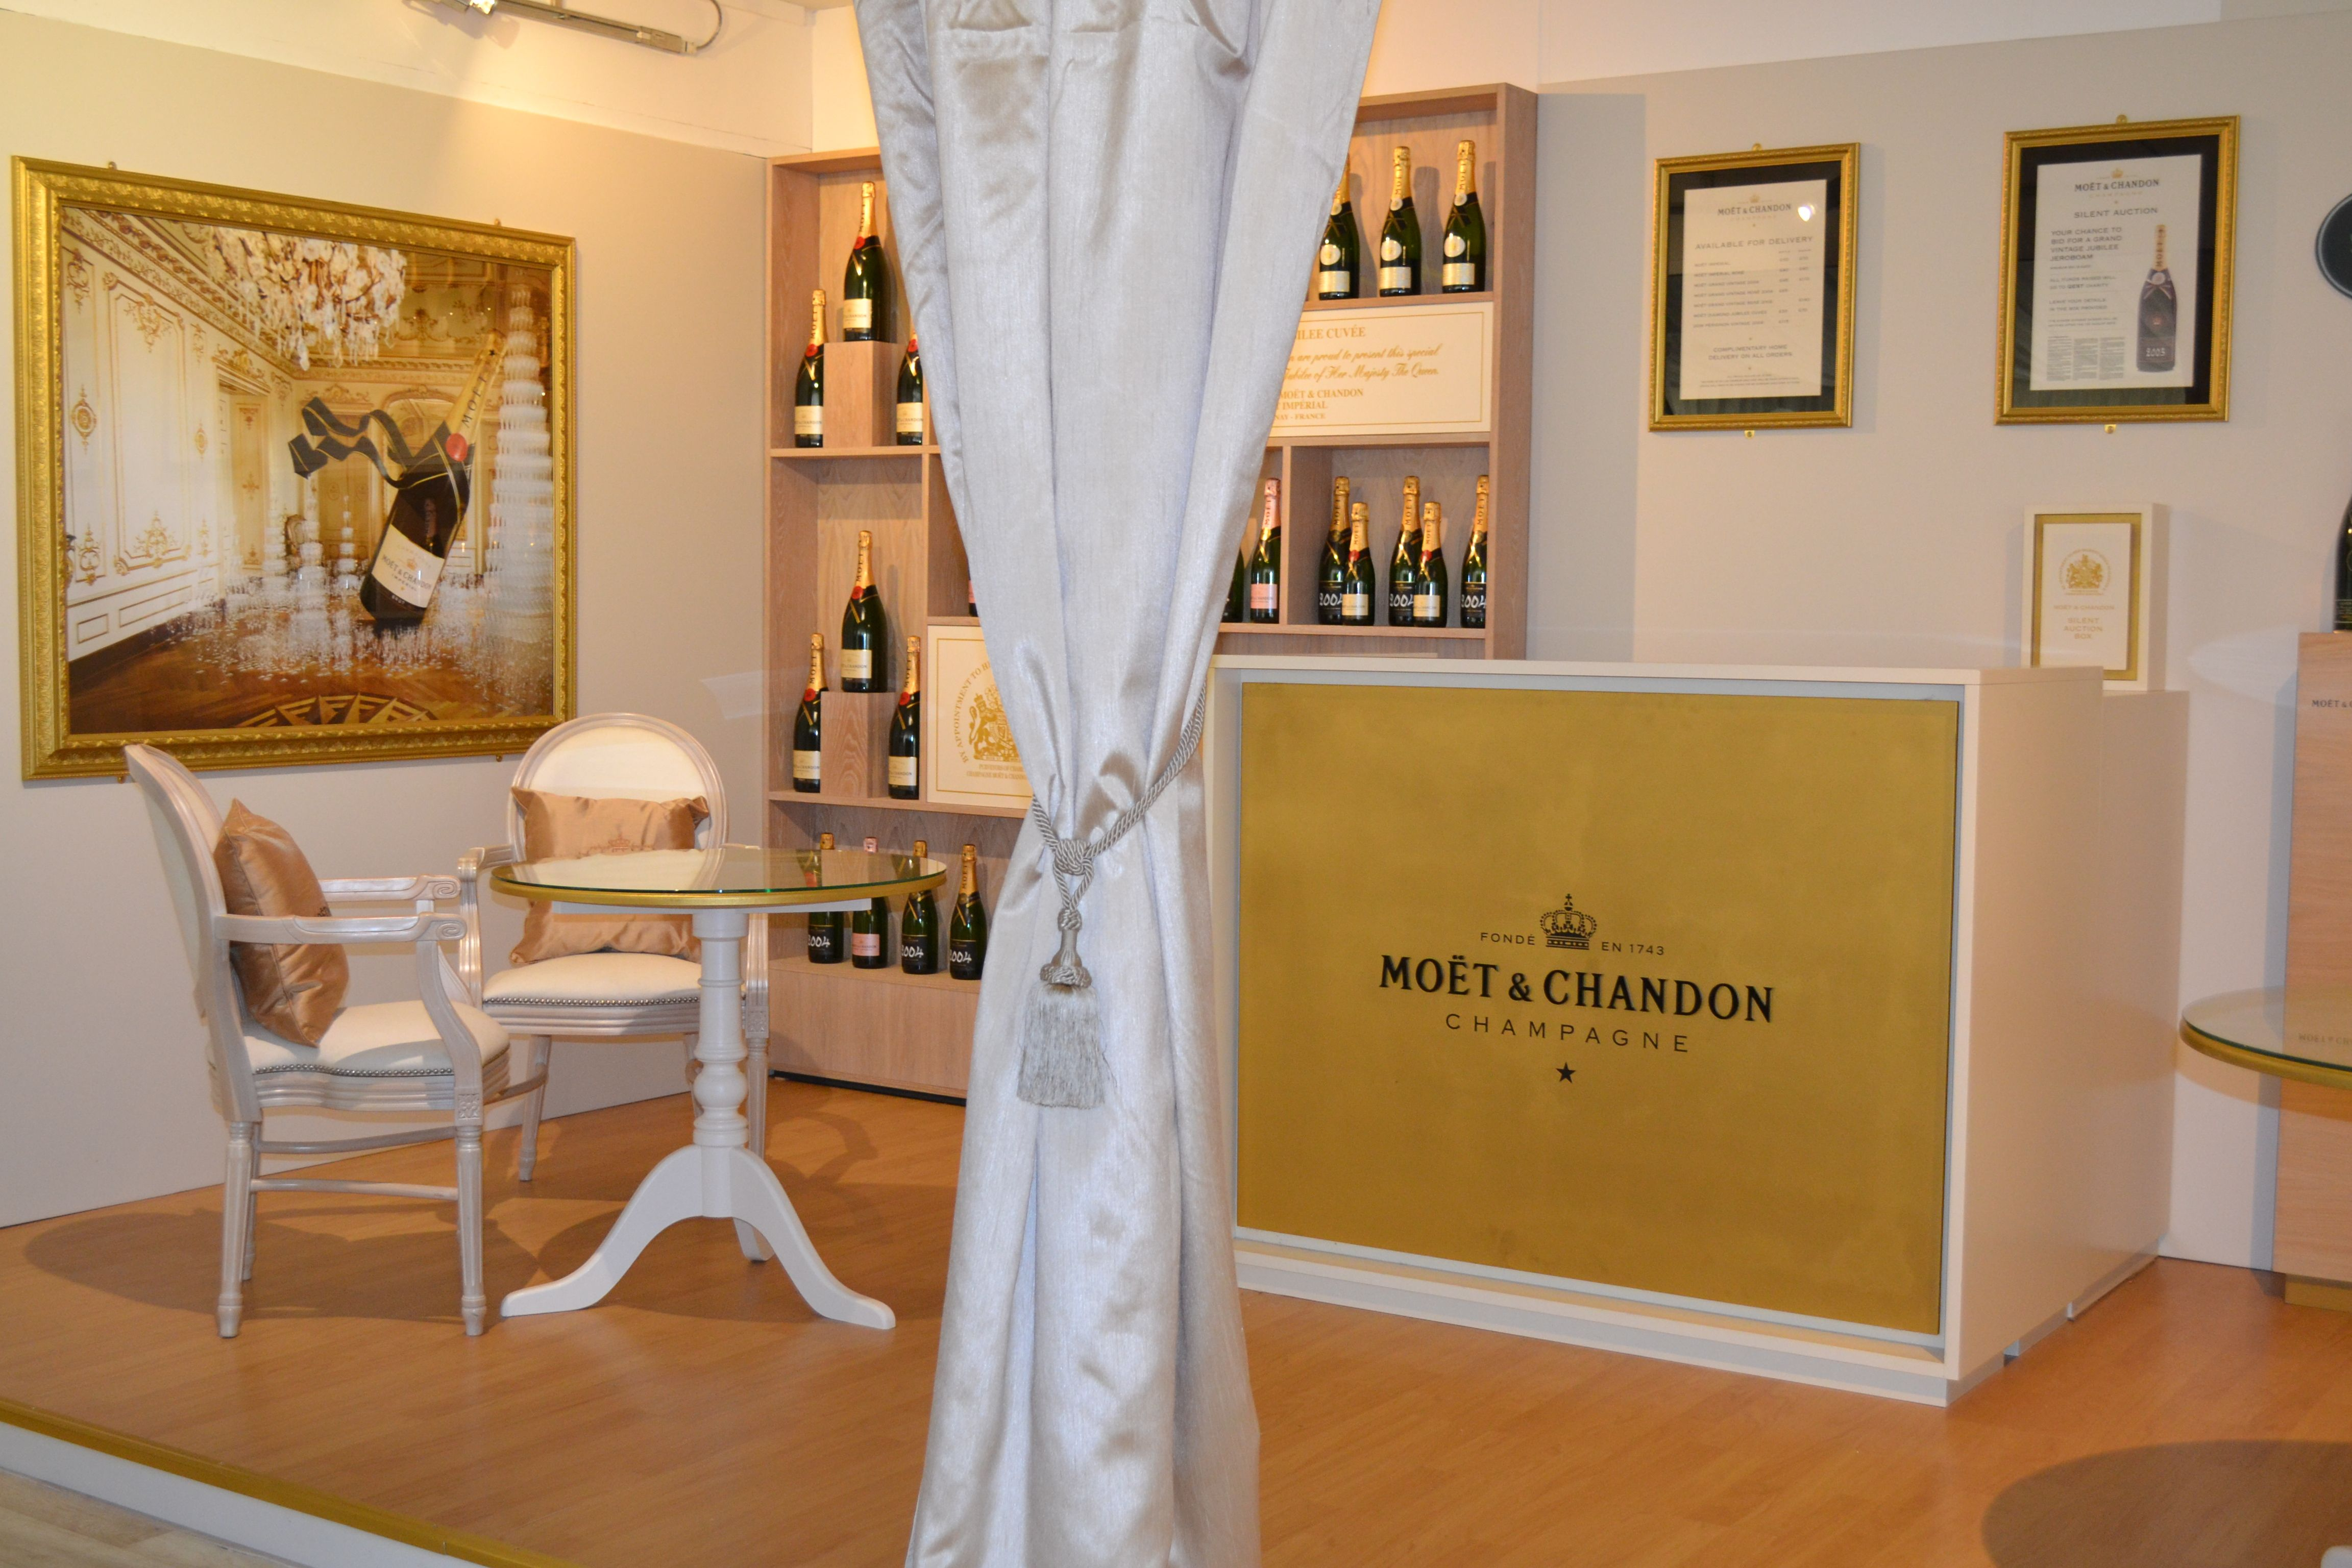 #moet #brandexperience #experiential #champagne